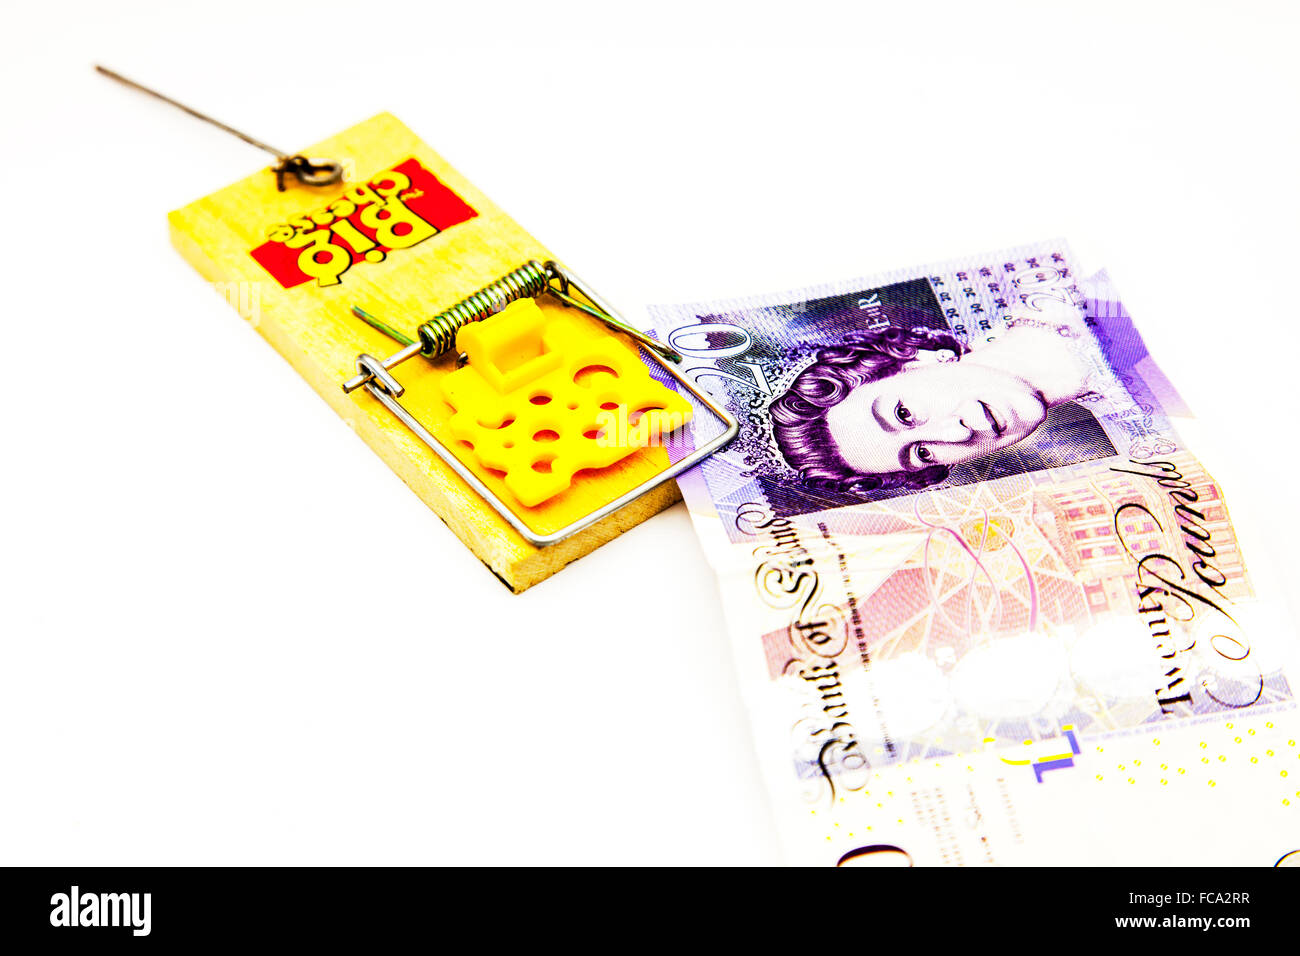 money in mouse trap trip catch loan lender debt debts cash flow problem cutout cut out isolated white background - Stock Image